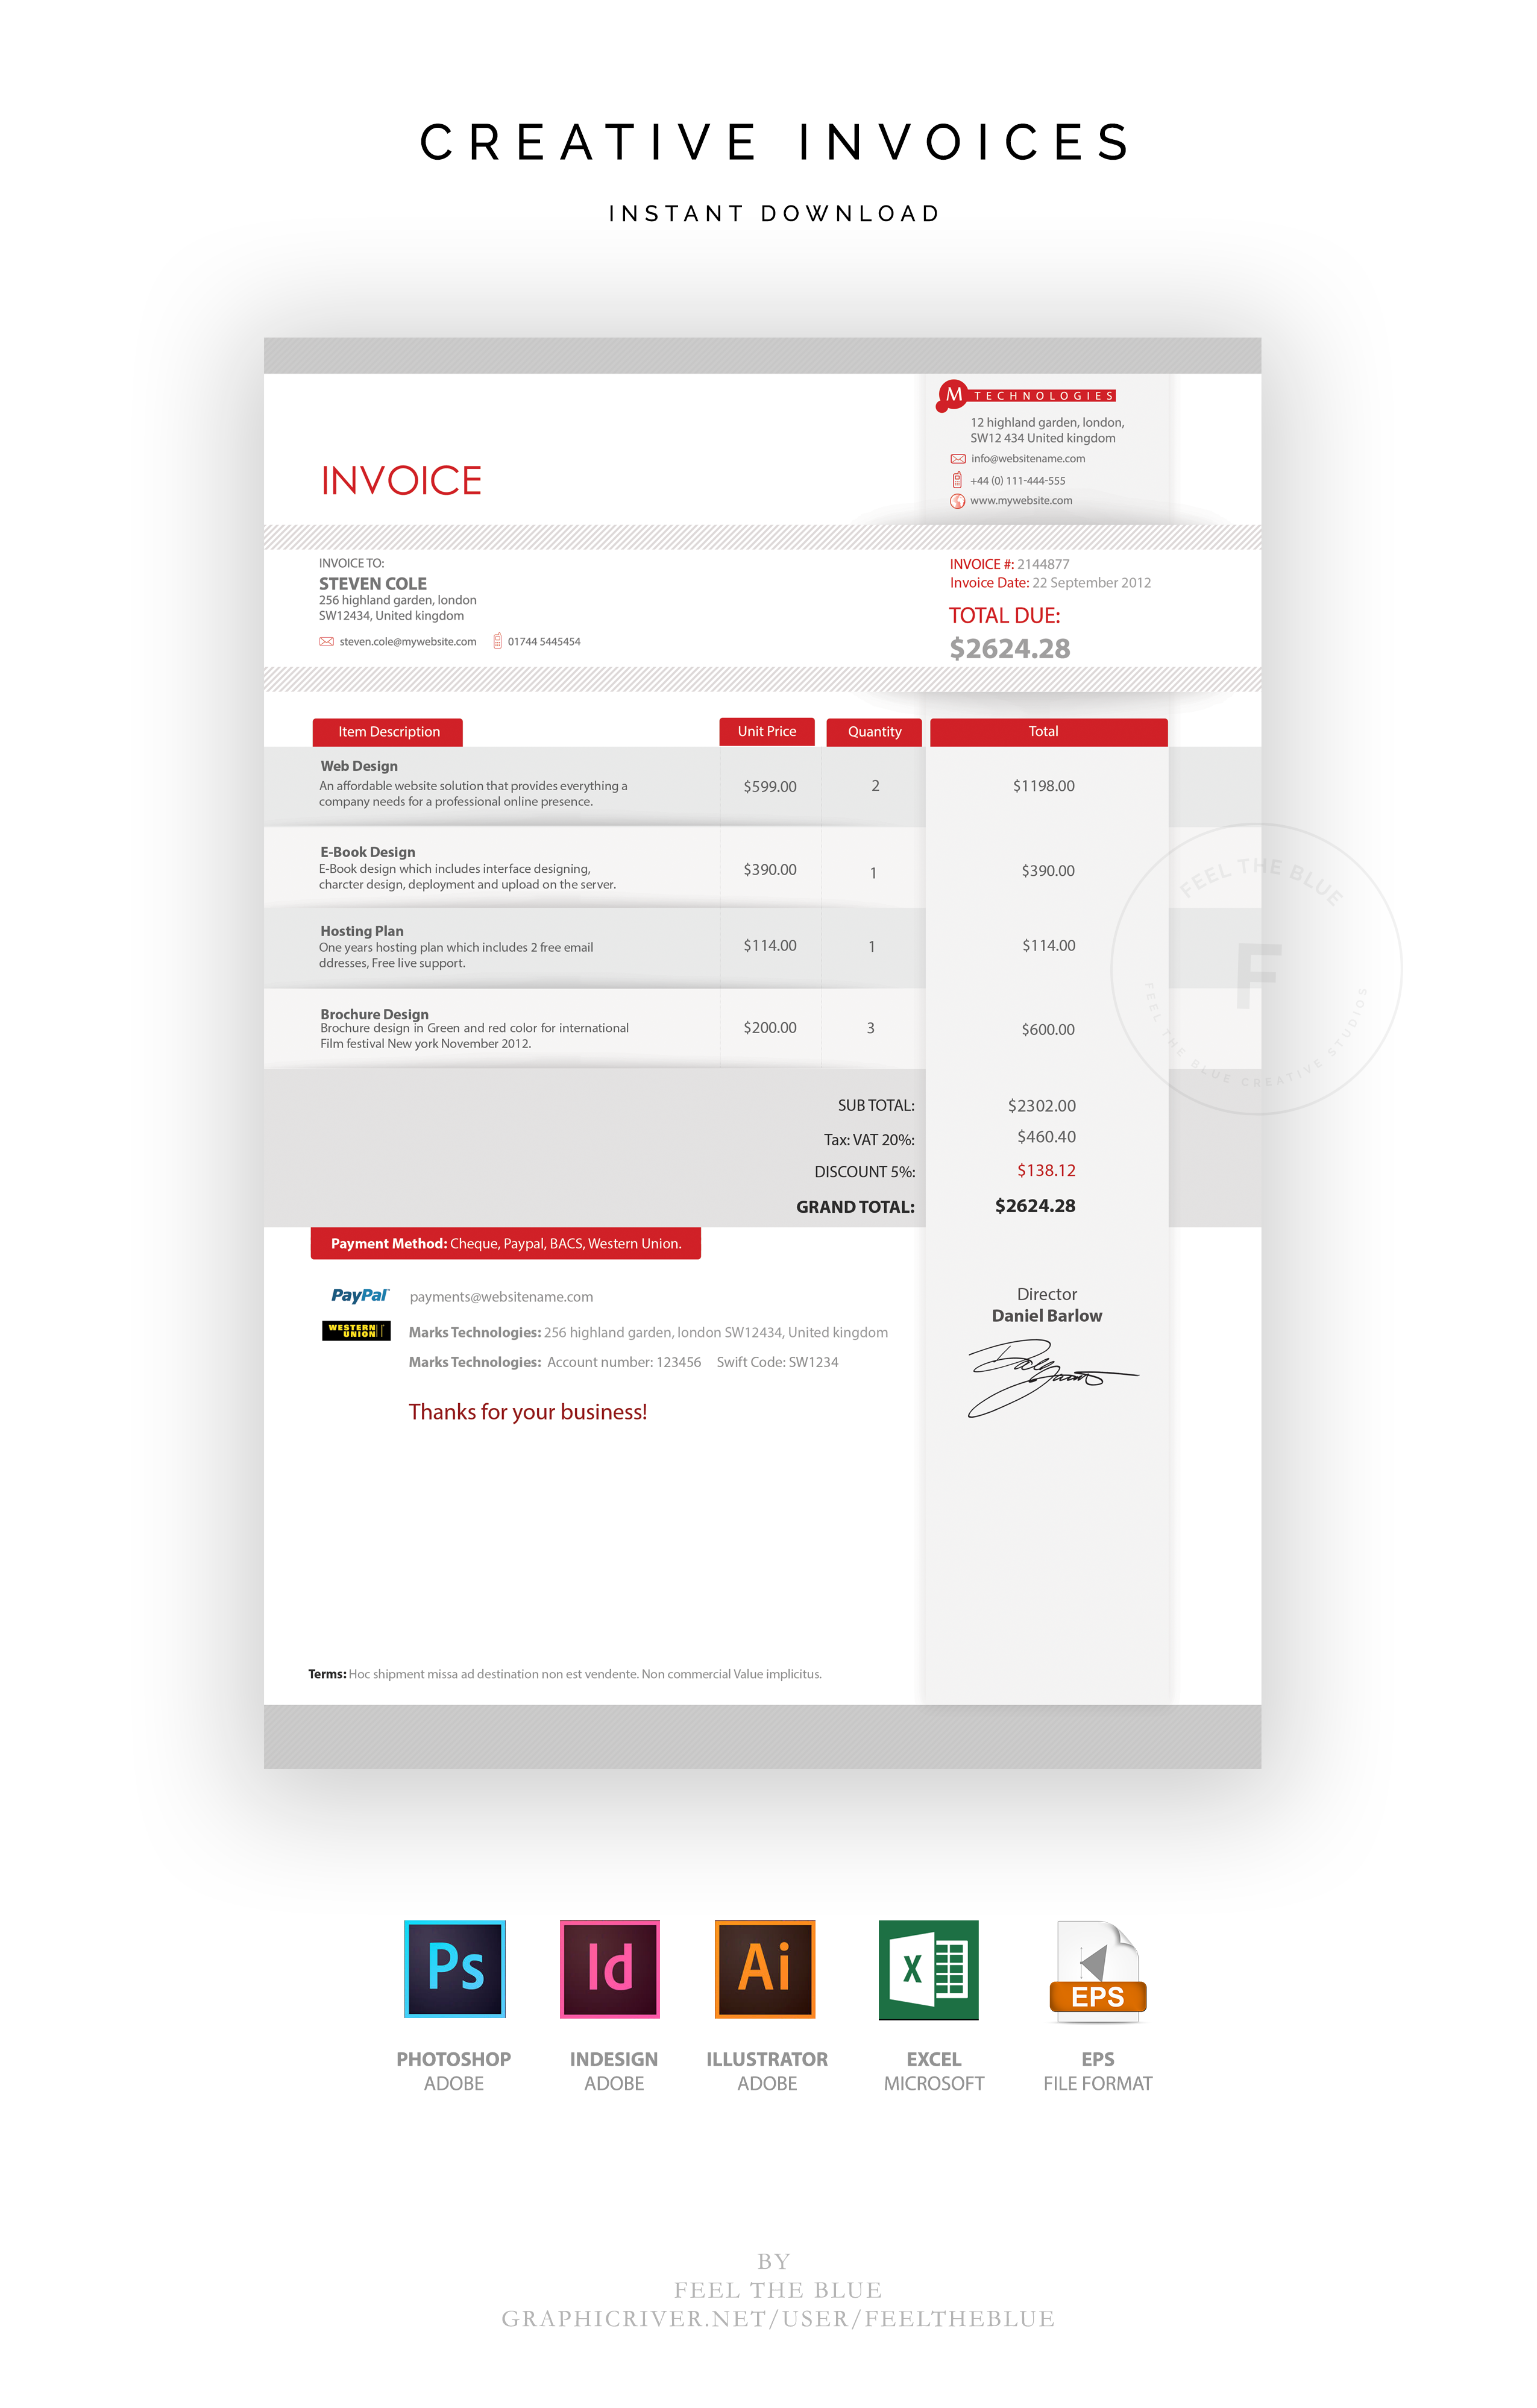 Professional Invoices Invoice Template Invoicing Photoshop